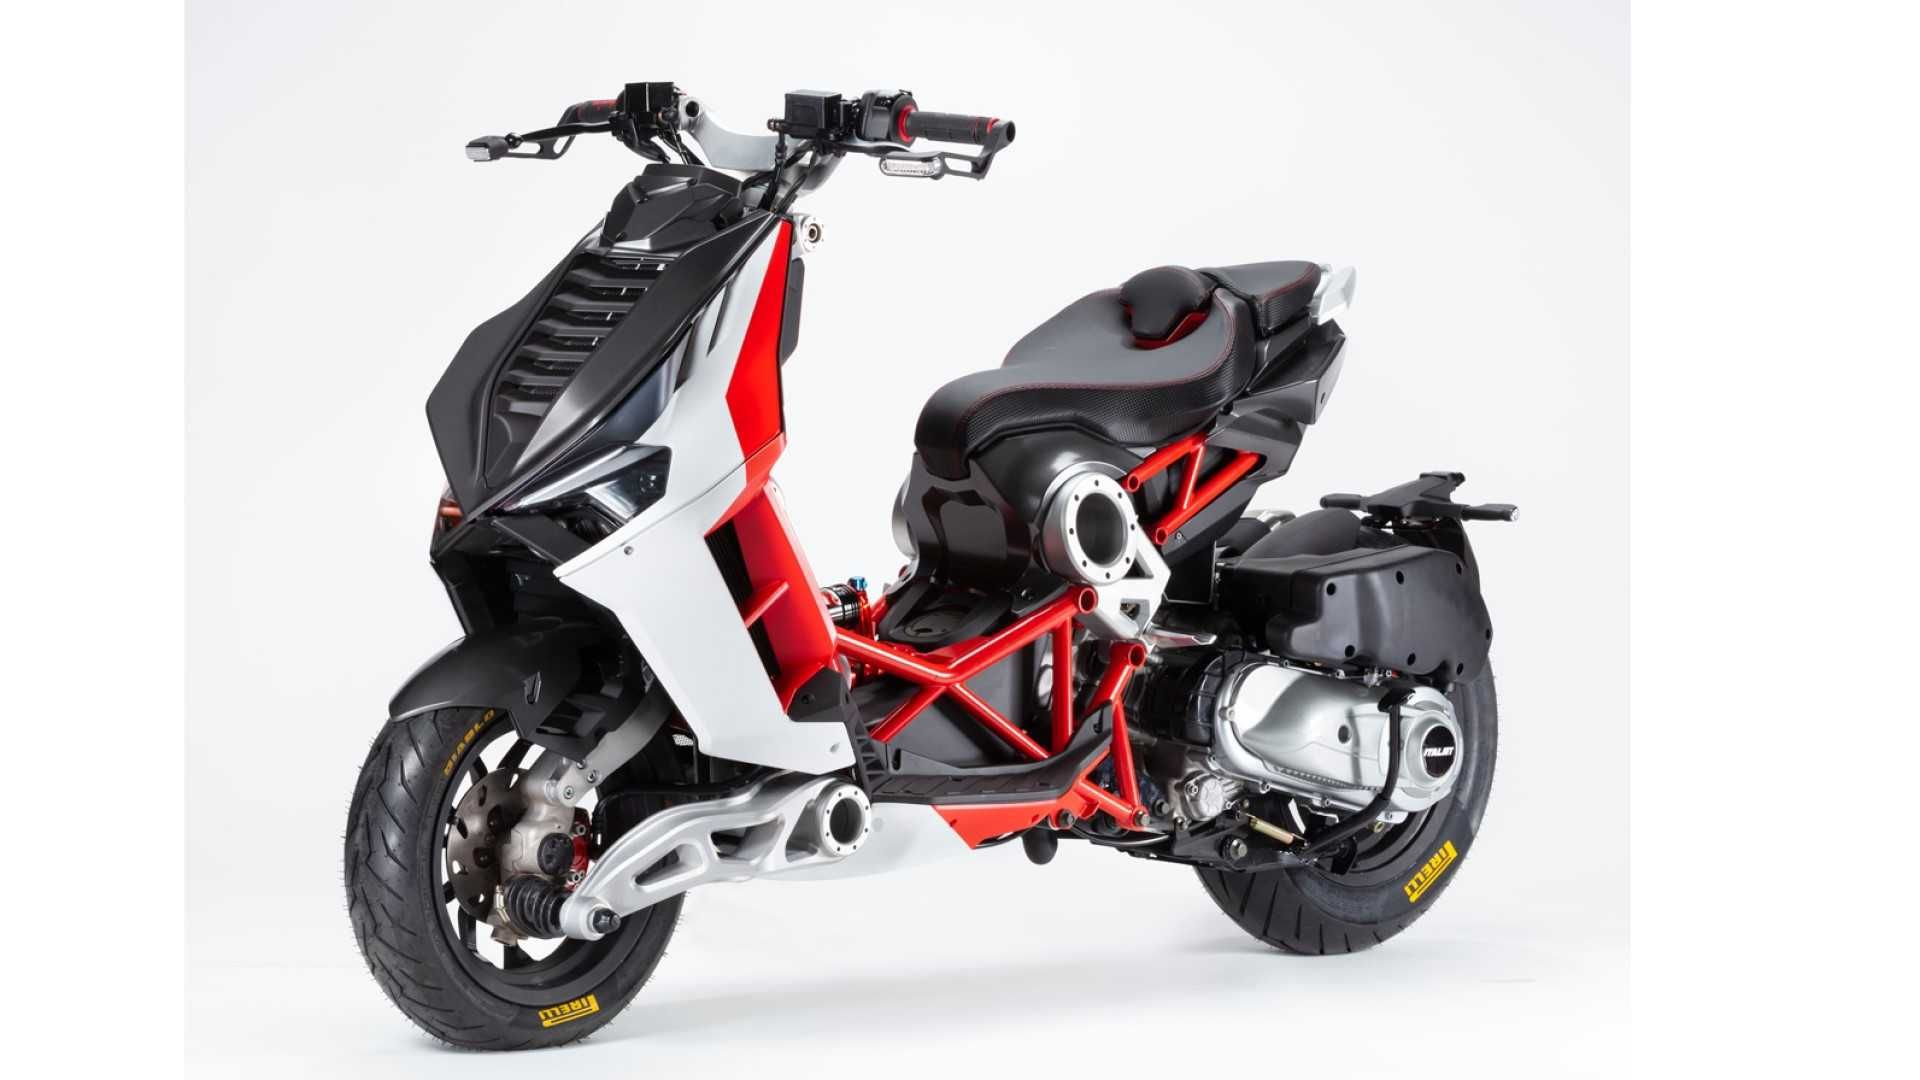 2019 Honda Wave 125i Price Drops To Rm5 999 For Single Philippines Motorcycles Market Data Facts 2019 Honda Bigbike Motorcycle Price Honda Honda Motorcycle